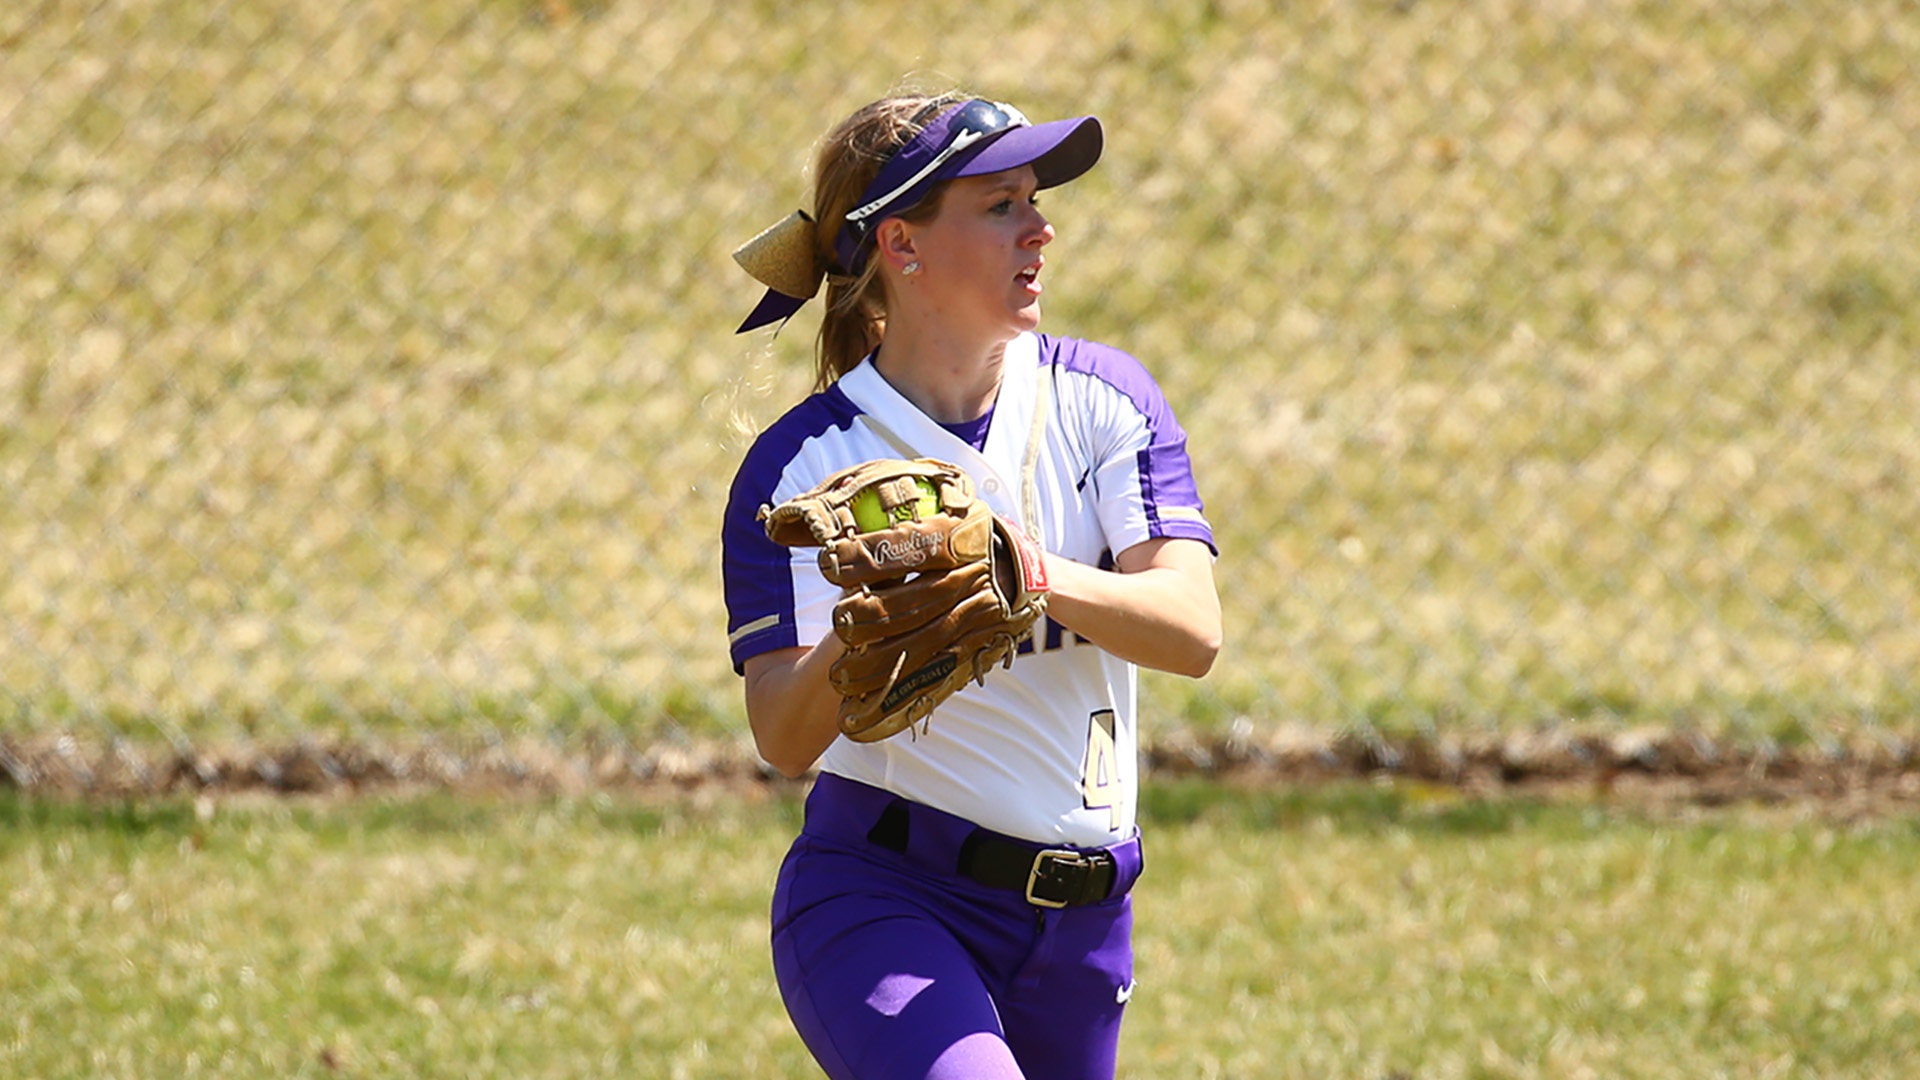 Regan Wolverton - Softball - Loras College Athletics